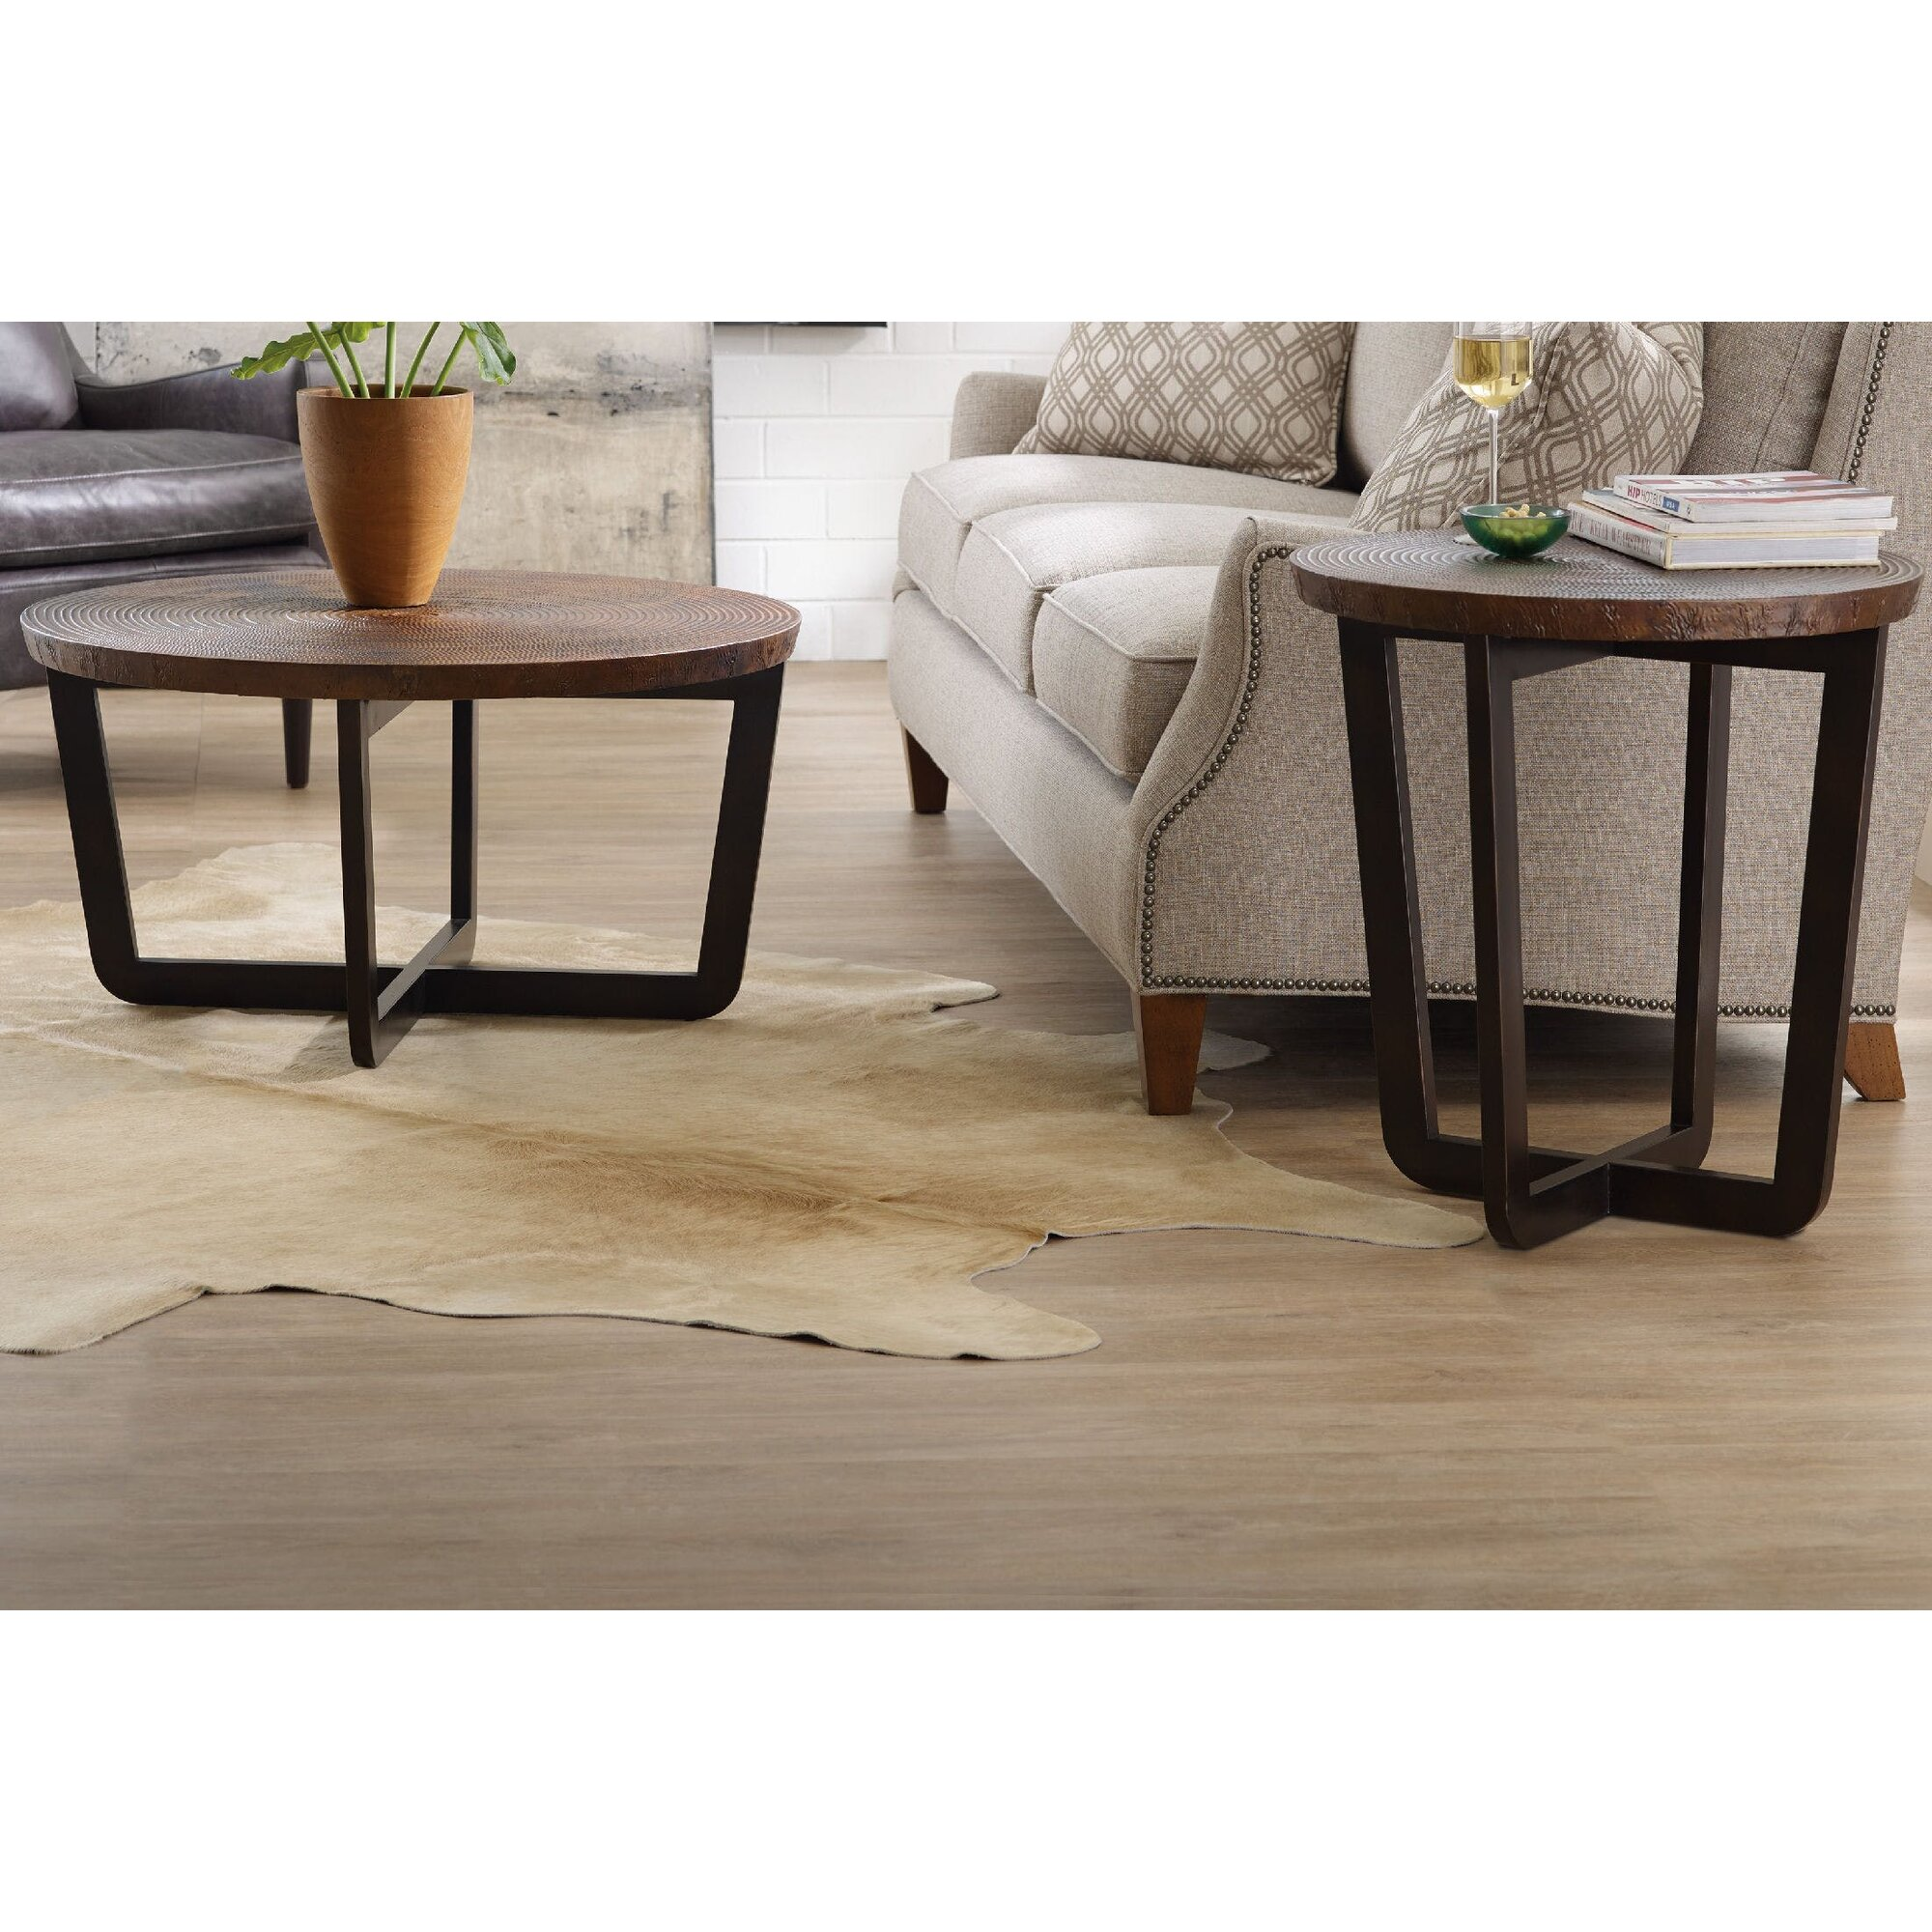 Hooker Furniture Parkcrest 2 Piece Coffee Table Set